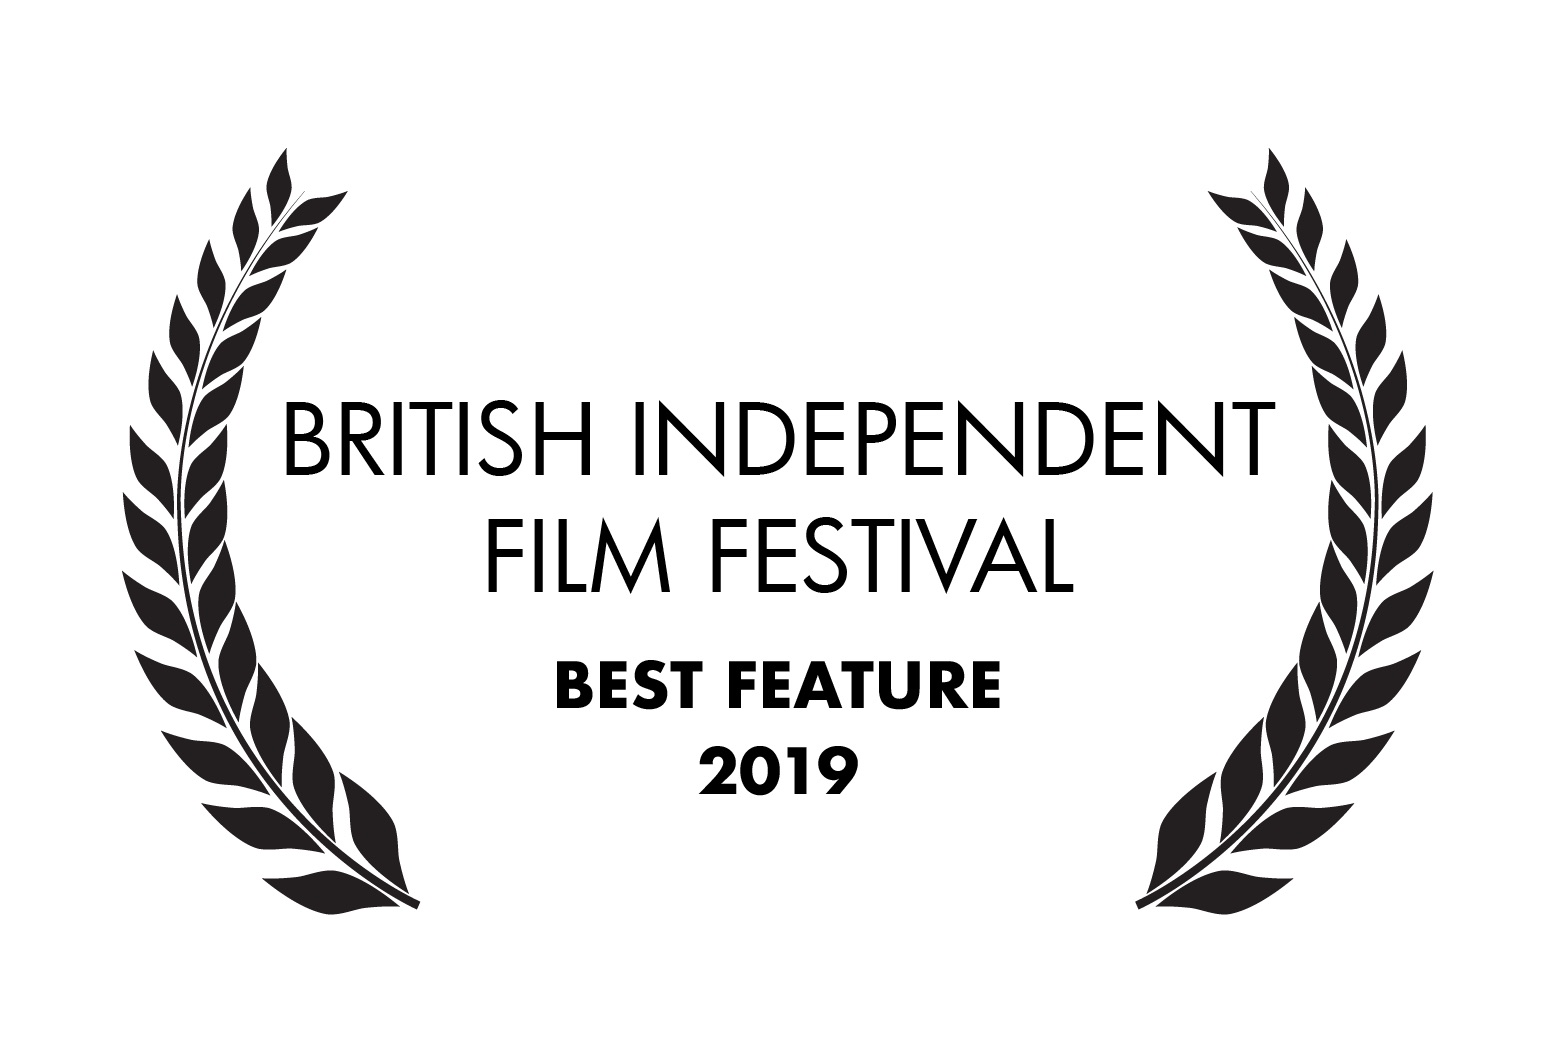 British Independent Film Festival